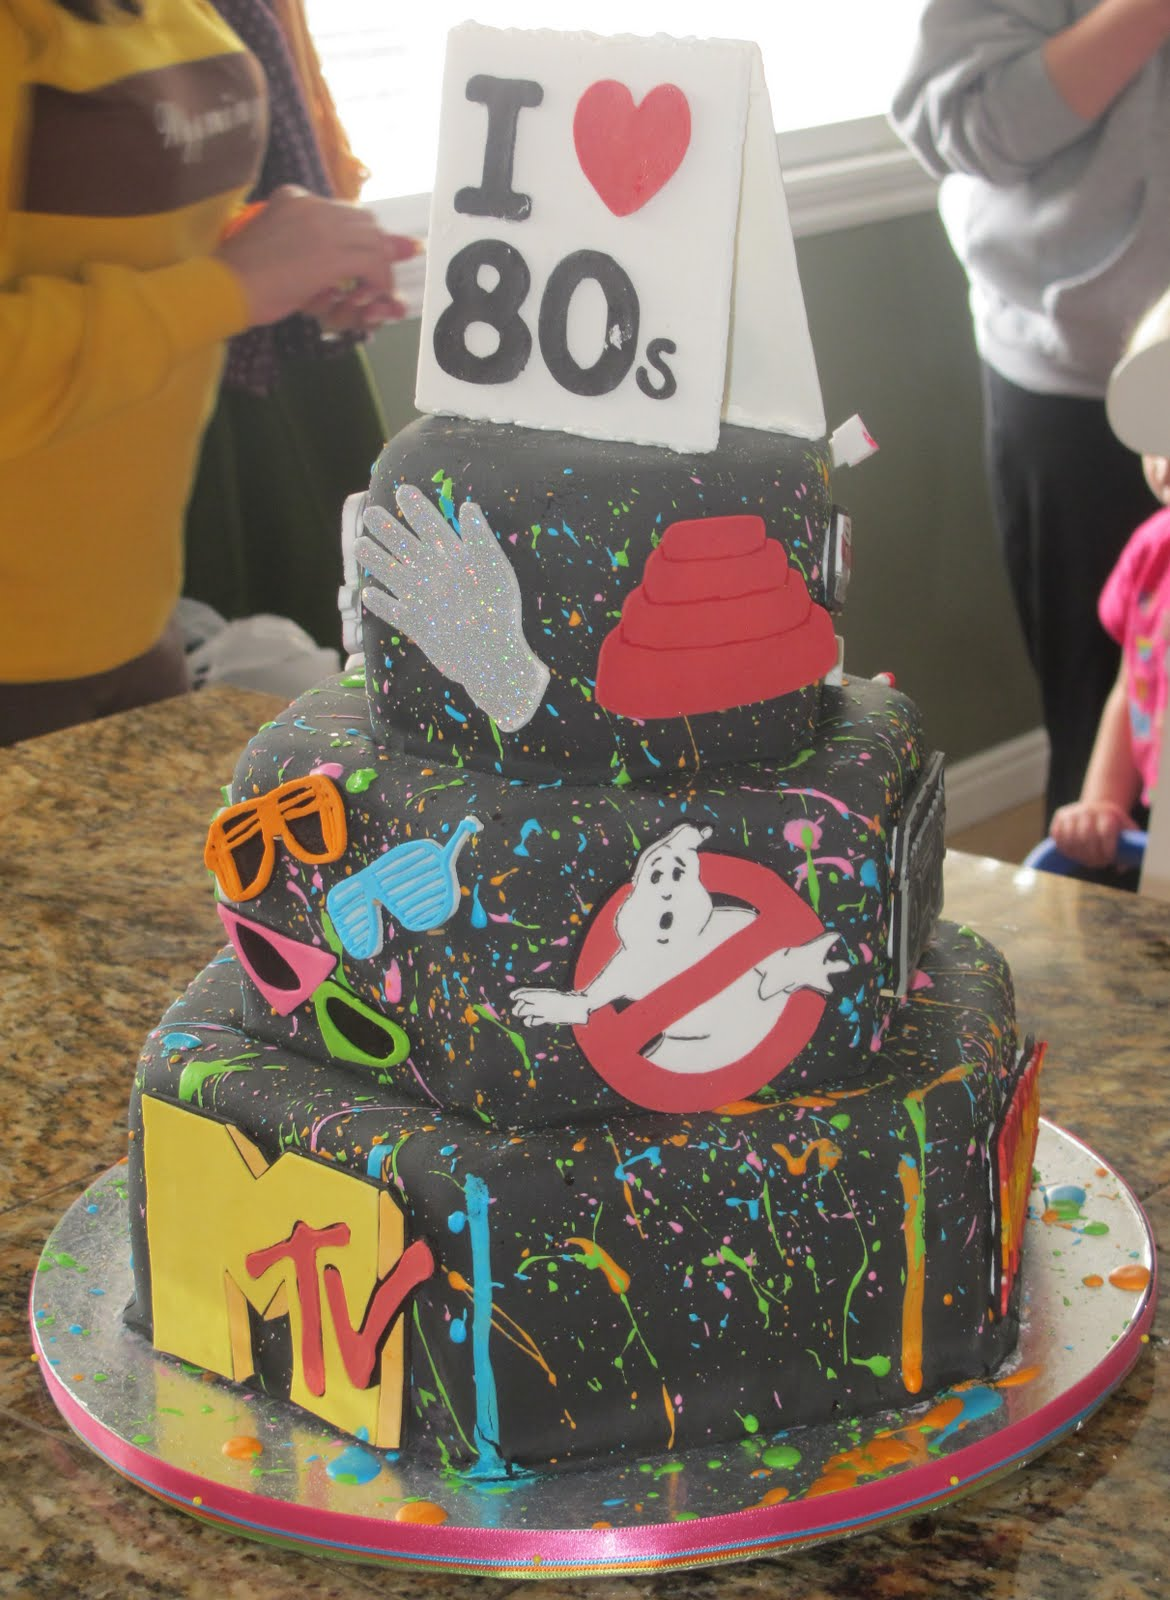 J 39 s cakes i heart 80s cake for 80s cake decoration ideas